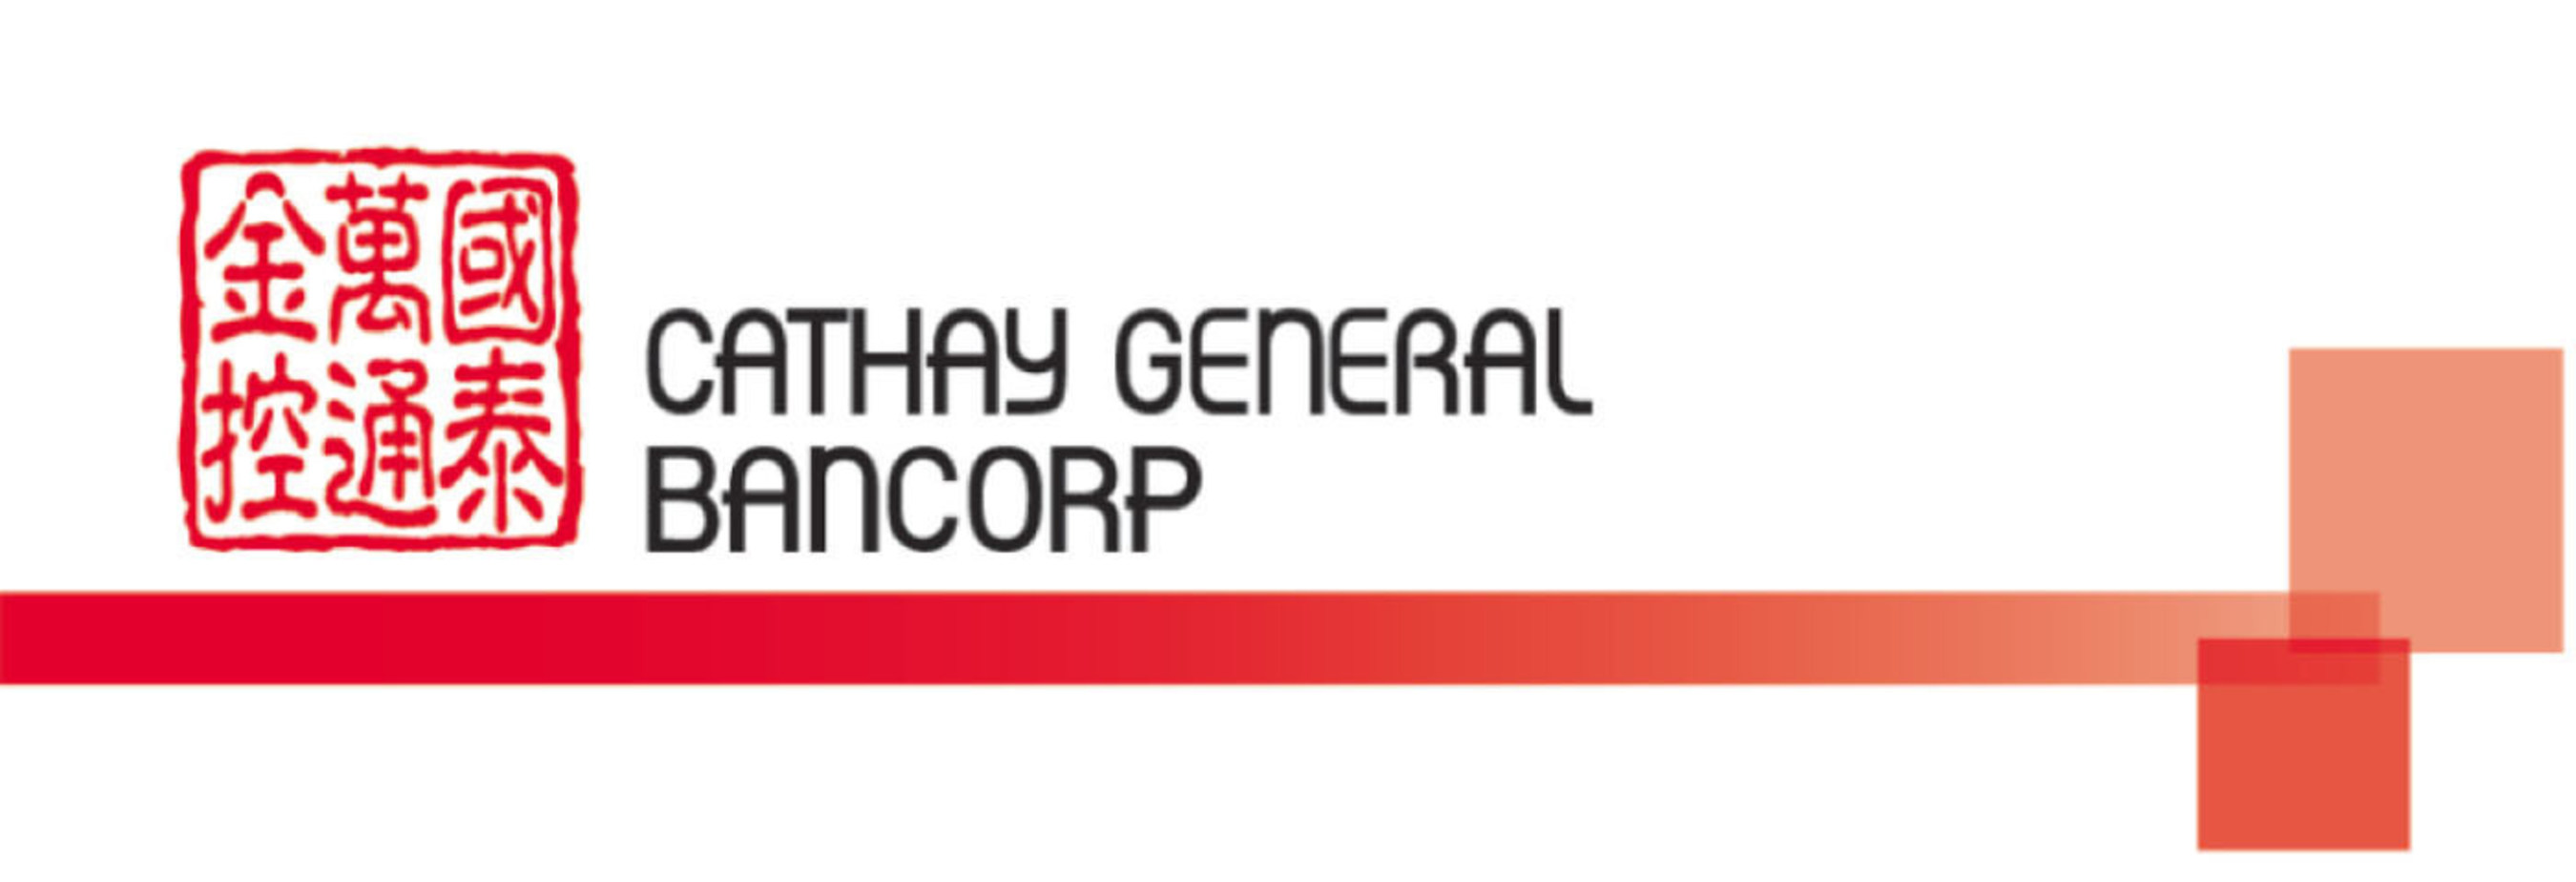 Cathay General Bancorp